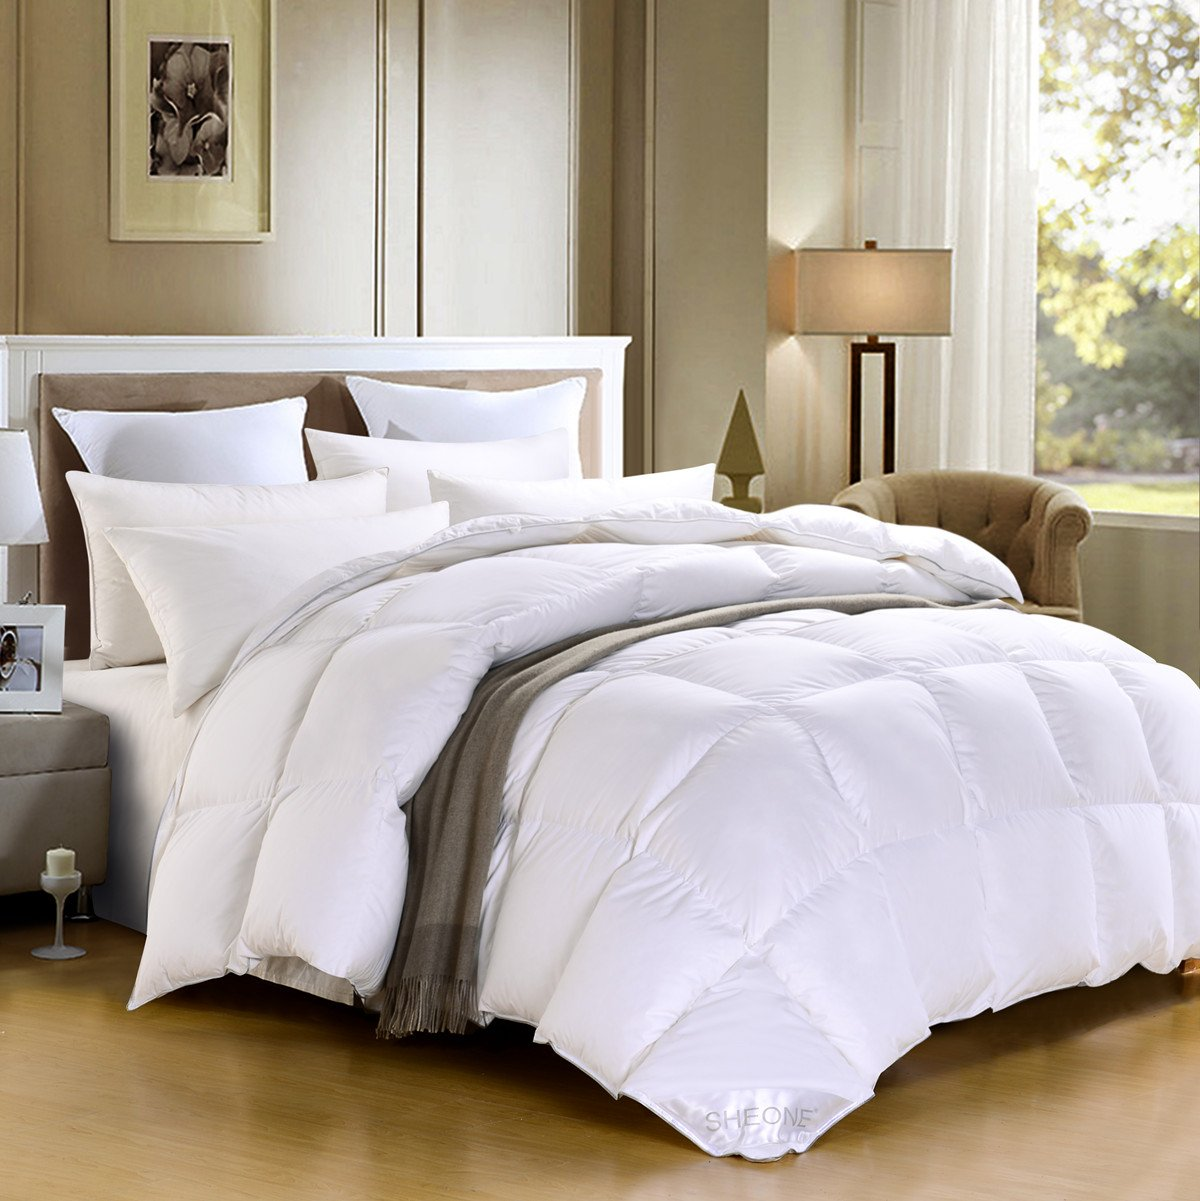 SHEONE Lightweight White Goose Down Comforter-600 Fill Power-100% Cotton Shell Down Proof-Solid White Hypo-allergenic Duvet Insert With Tabs (Queen) by SHEONE